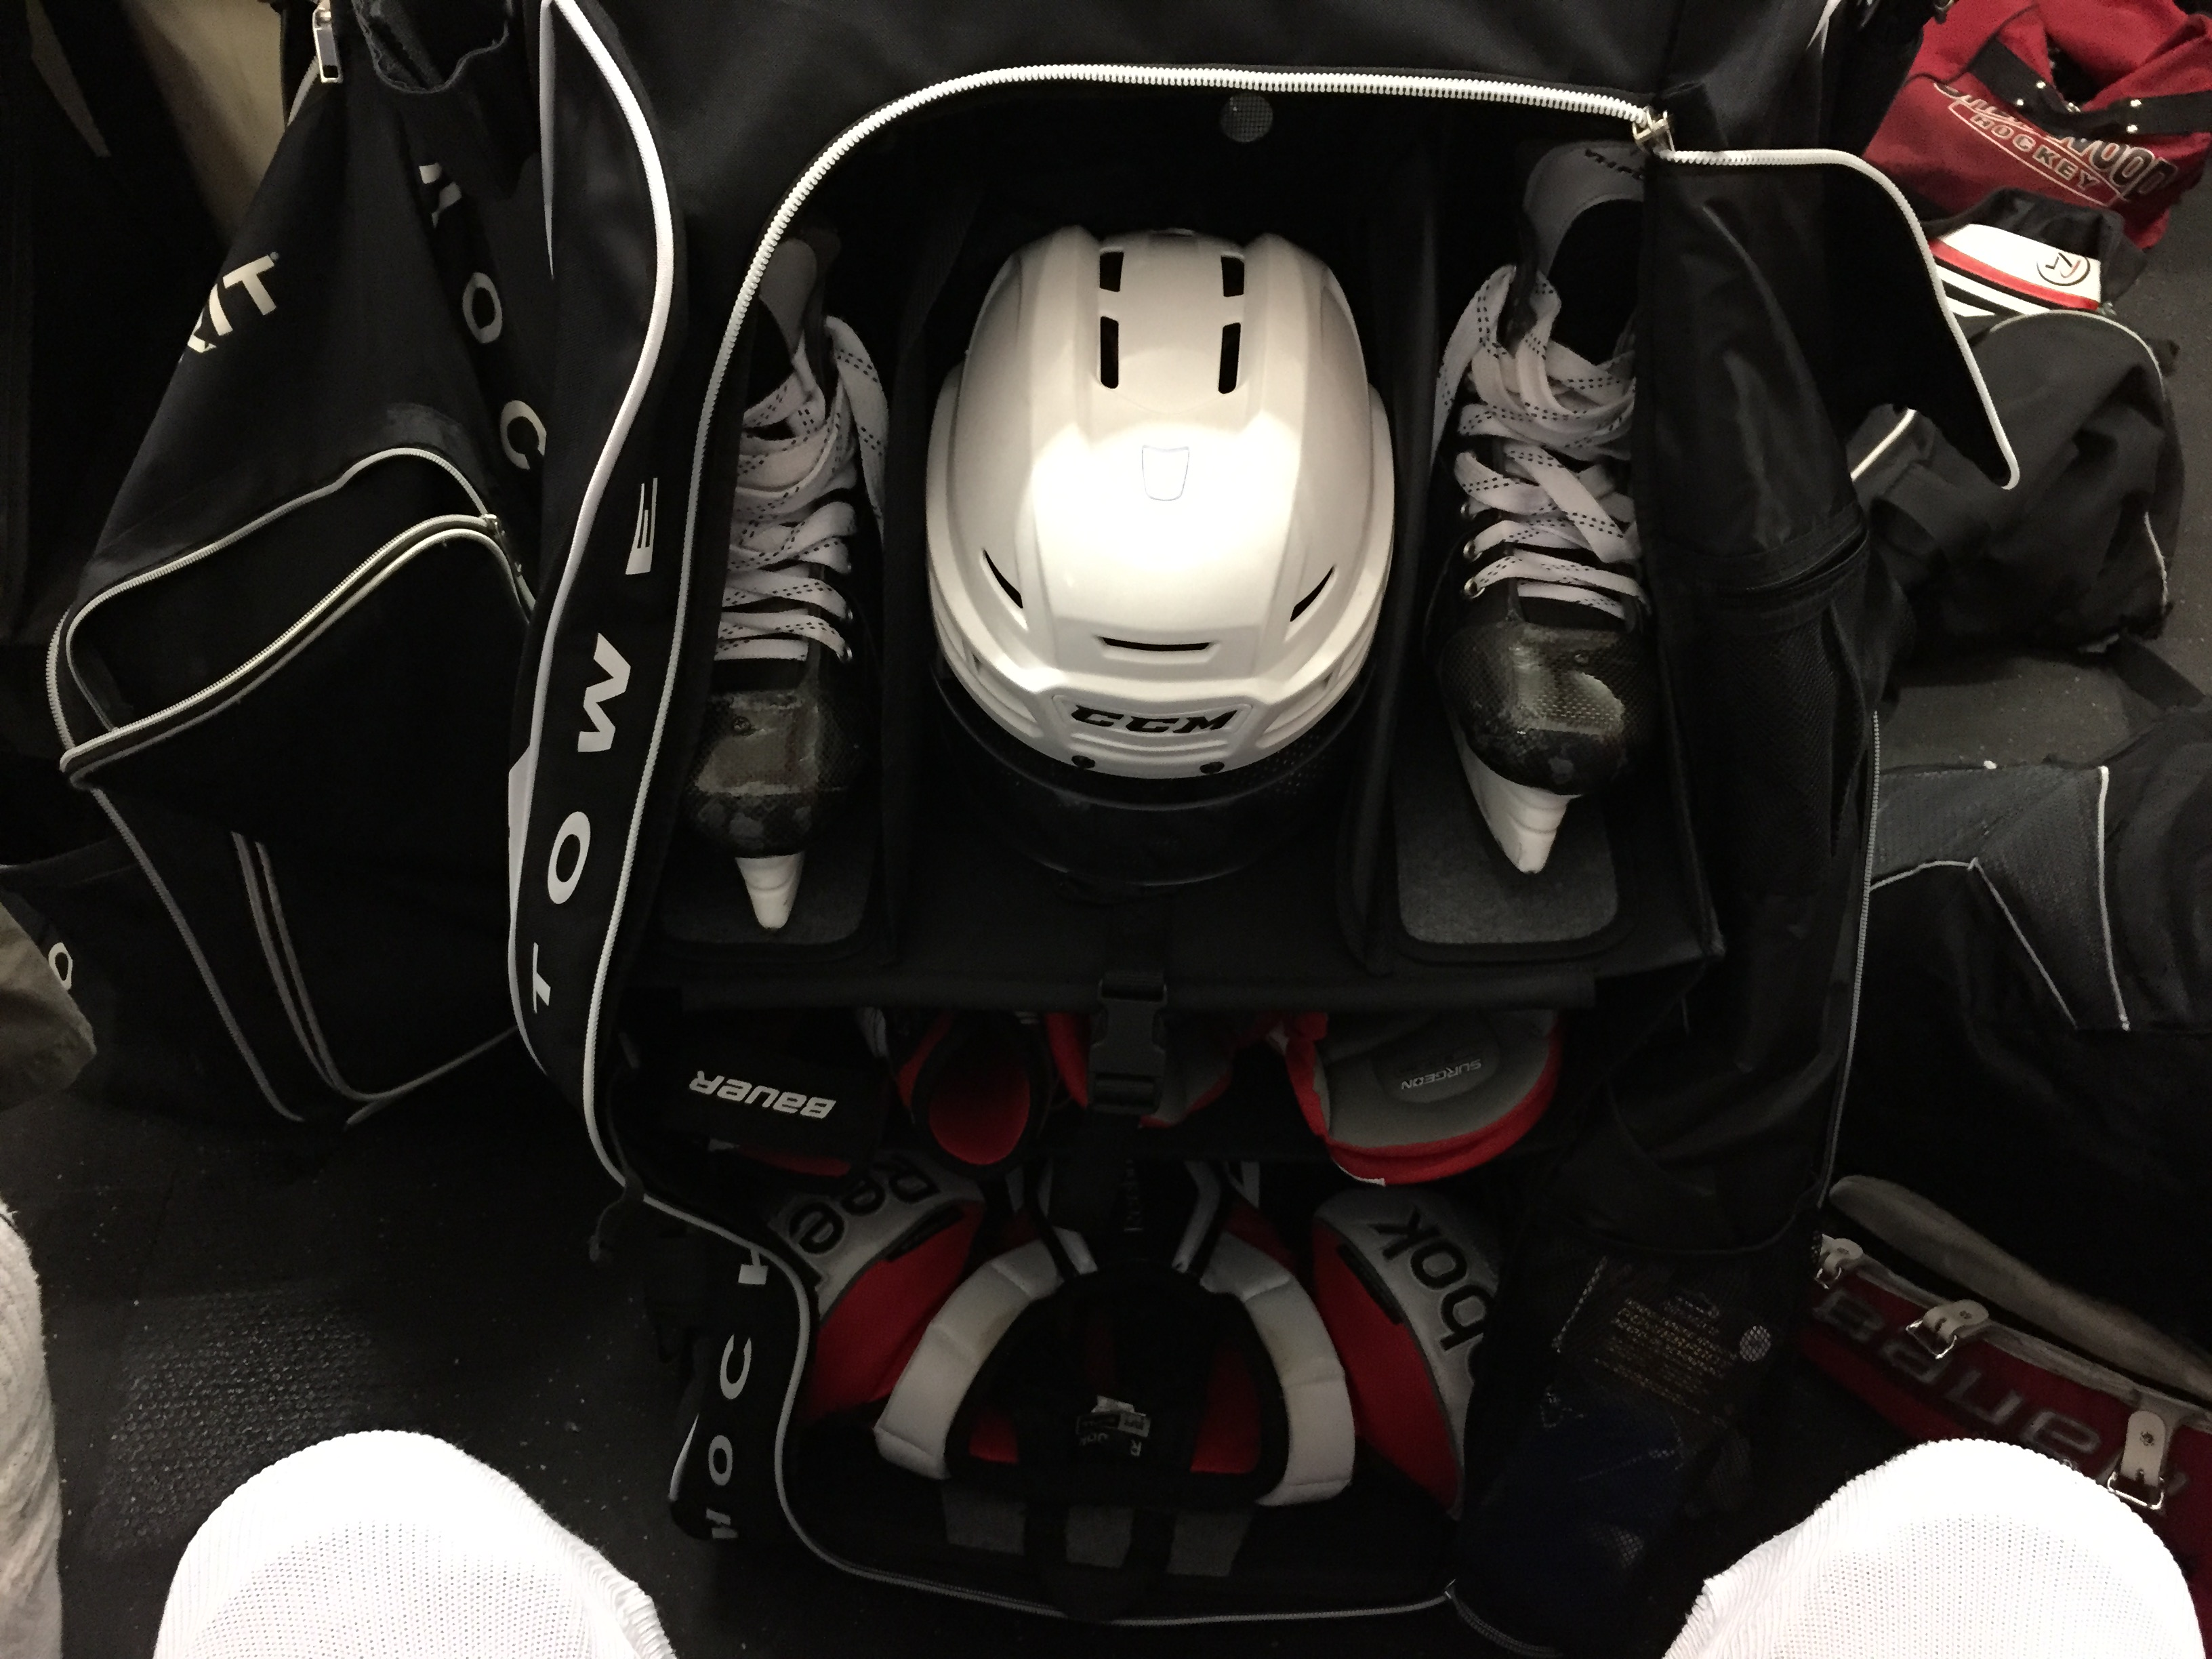 Grit HTSE Tower hockey bag review hockeytutorial